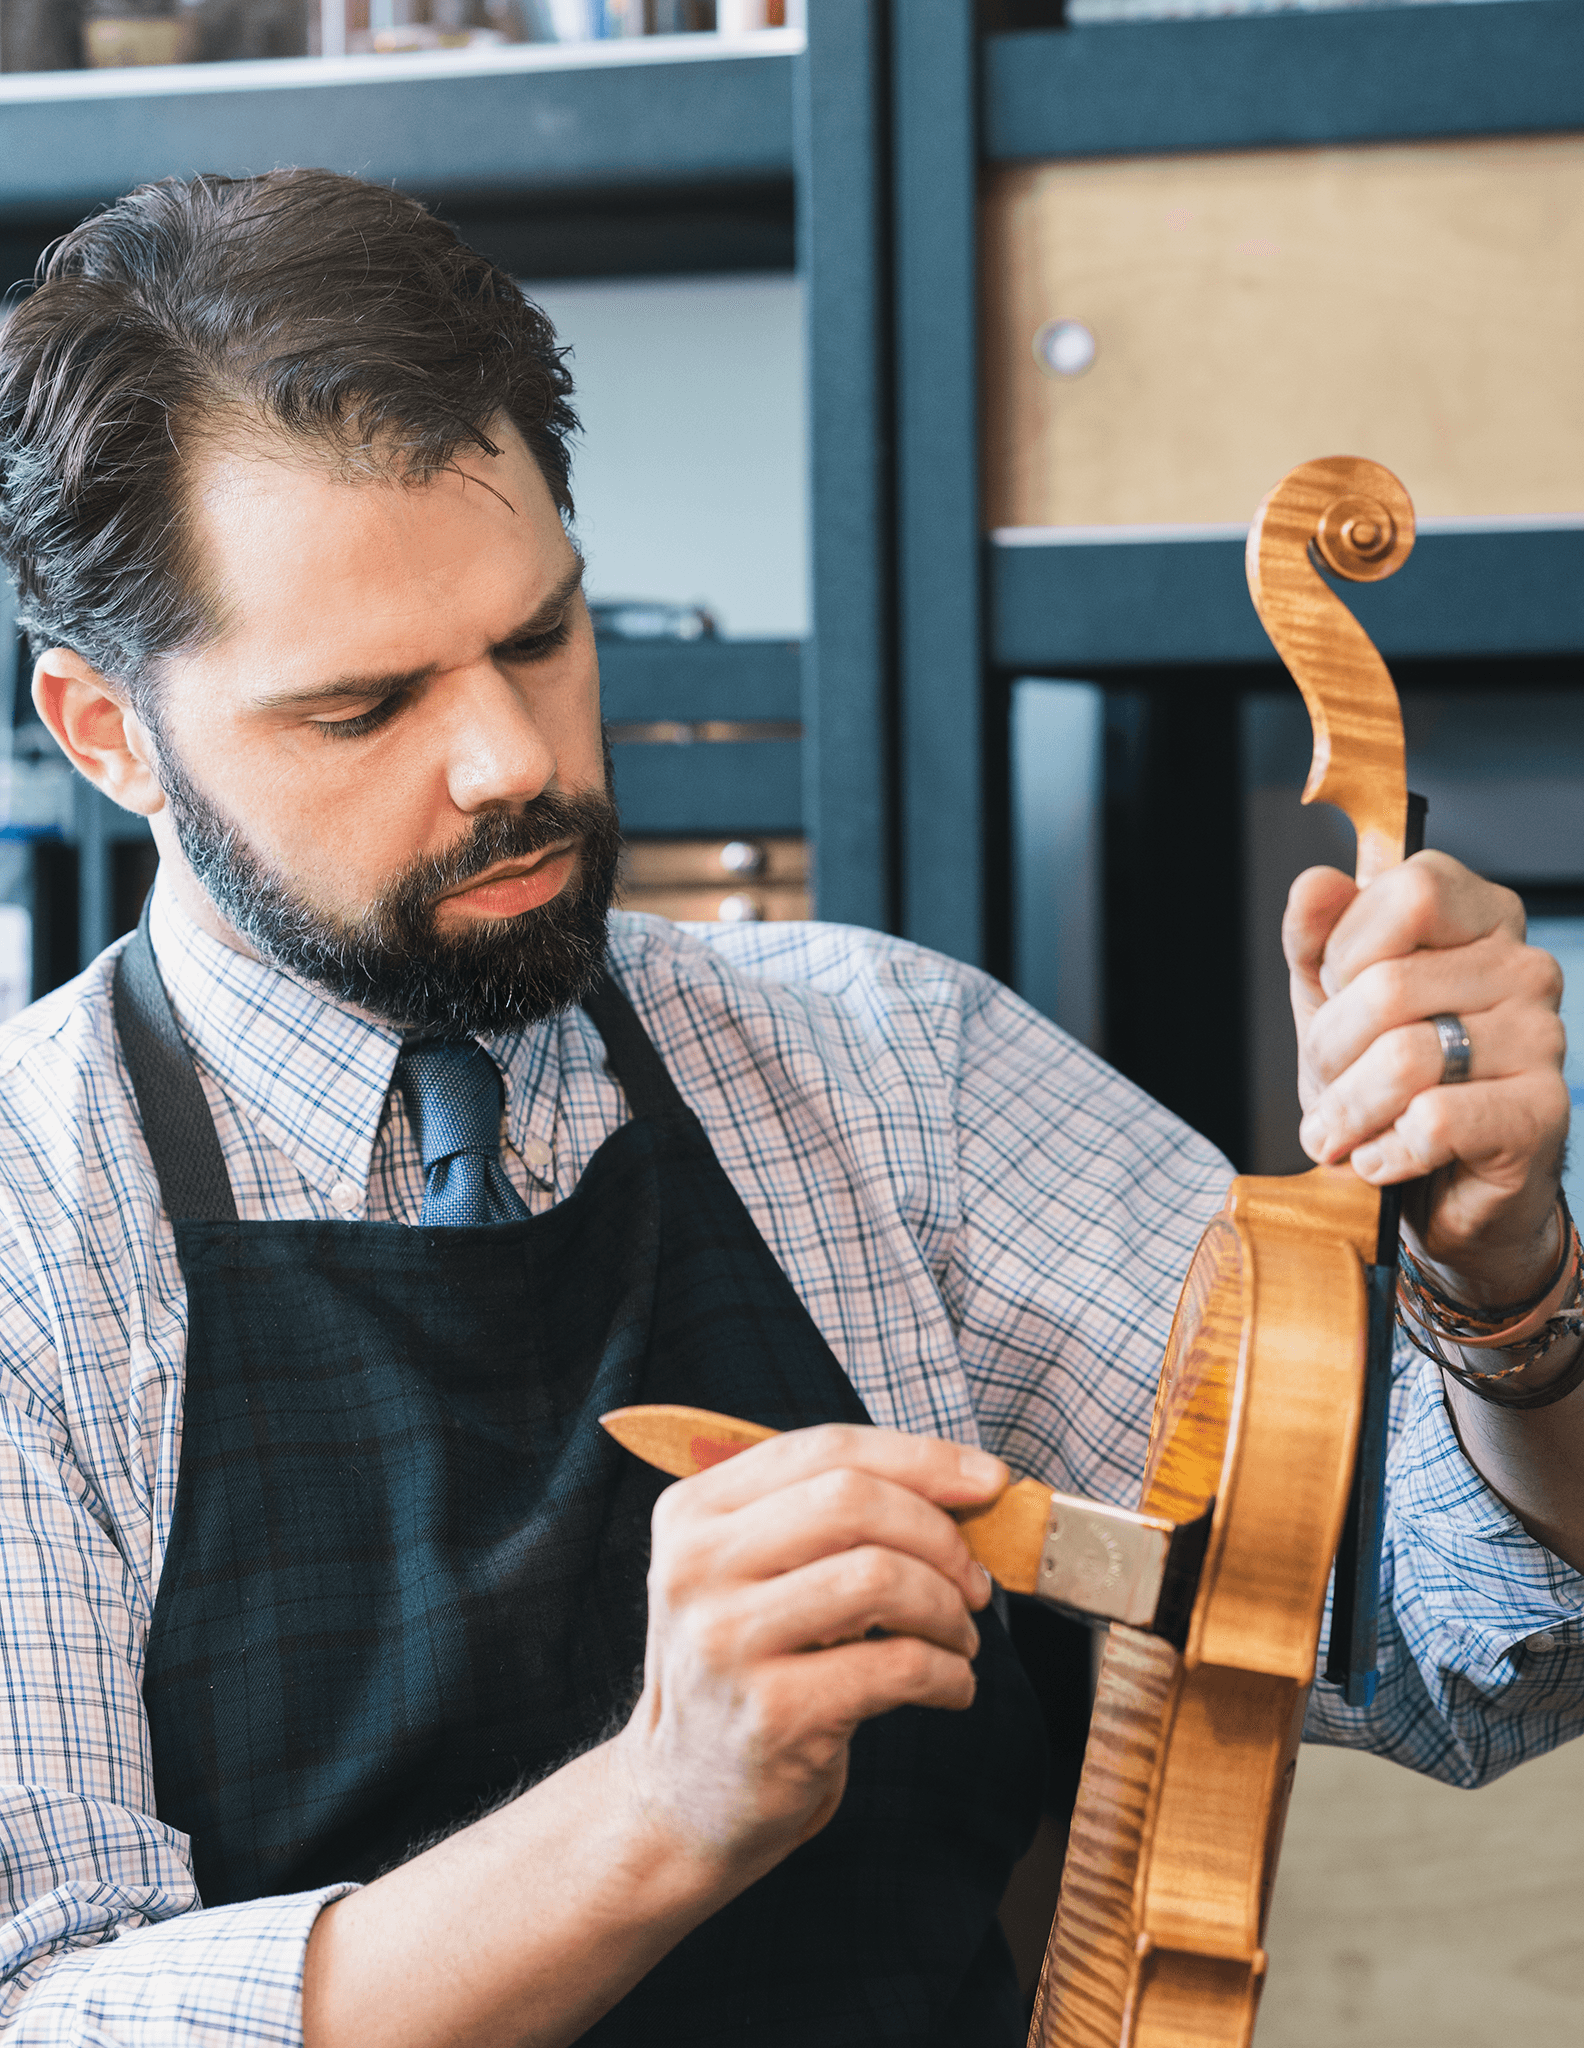 If I could only give one piece of advice to players that would protect their investment and lower repair bills, it would be to wipe down their instrument after playing, with a clean, dry cloth.  ~Ryan McLaughlin, luthier